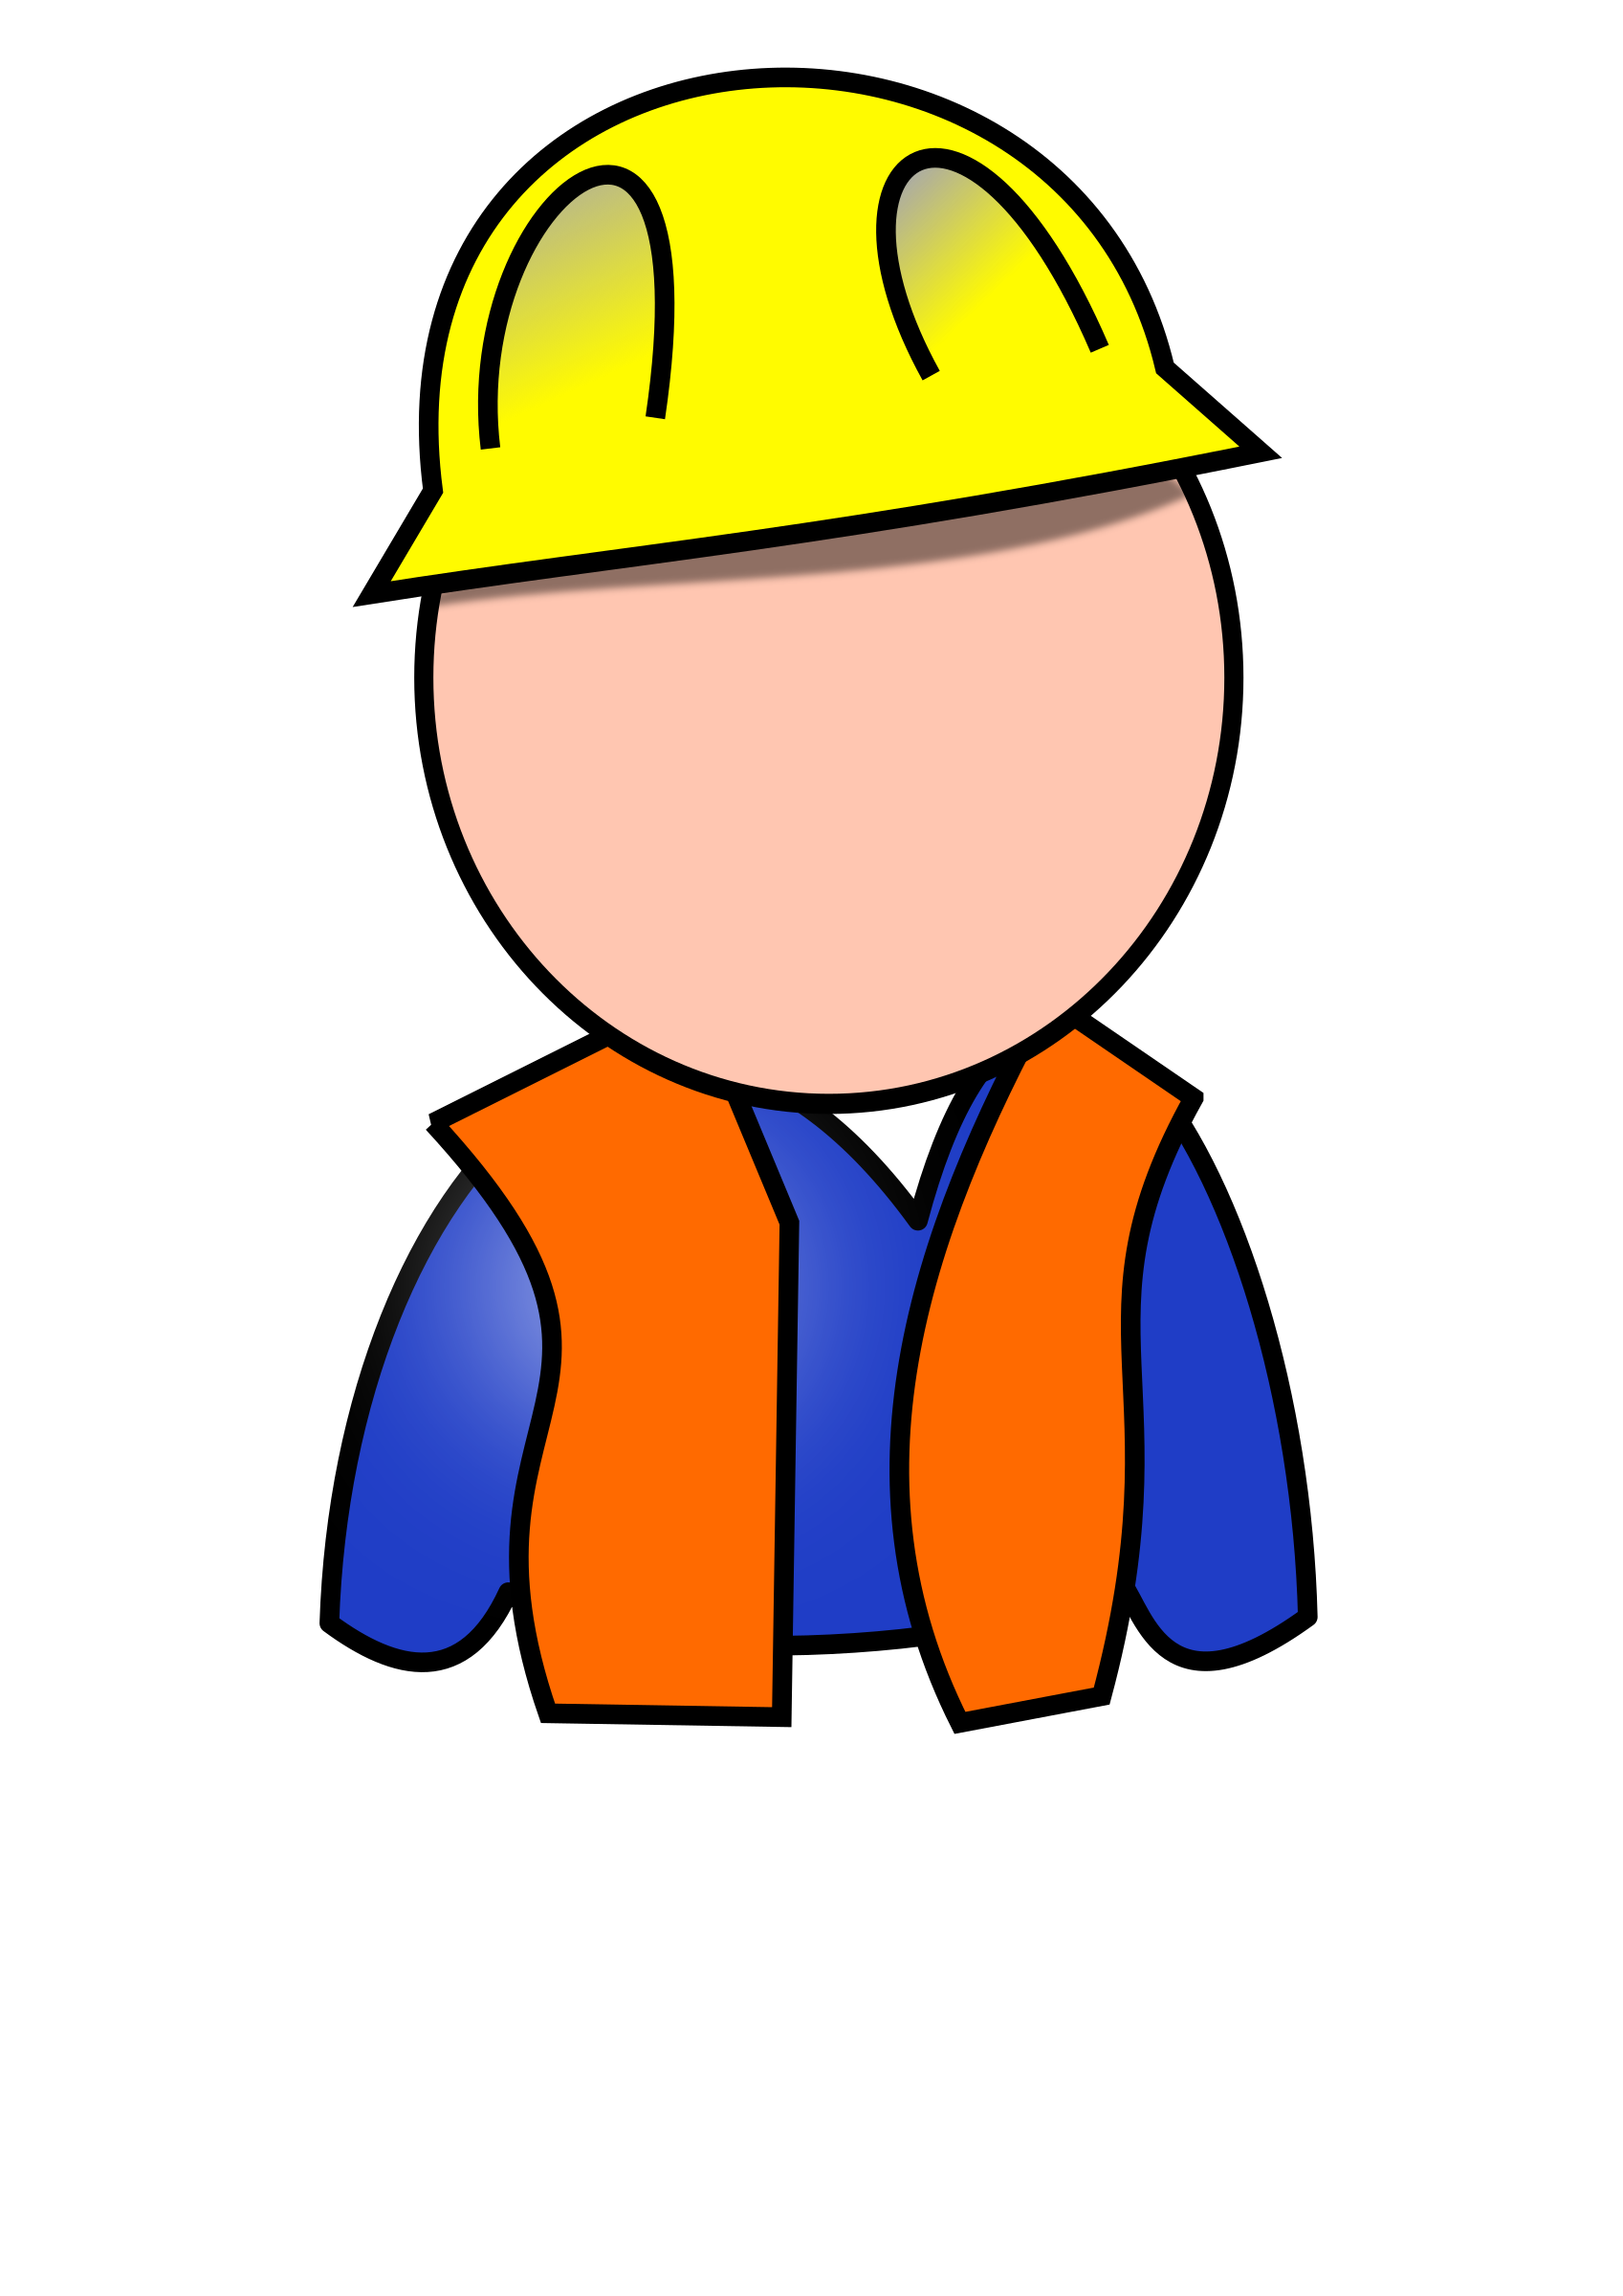 picture royalty free stock Worker clipart. Big image png